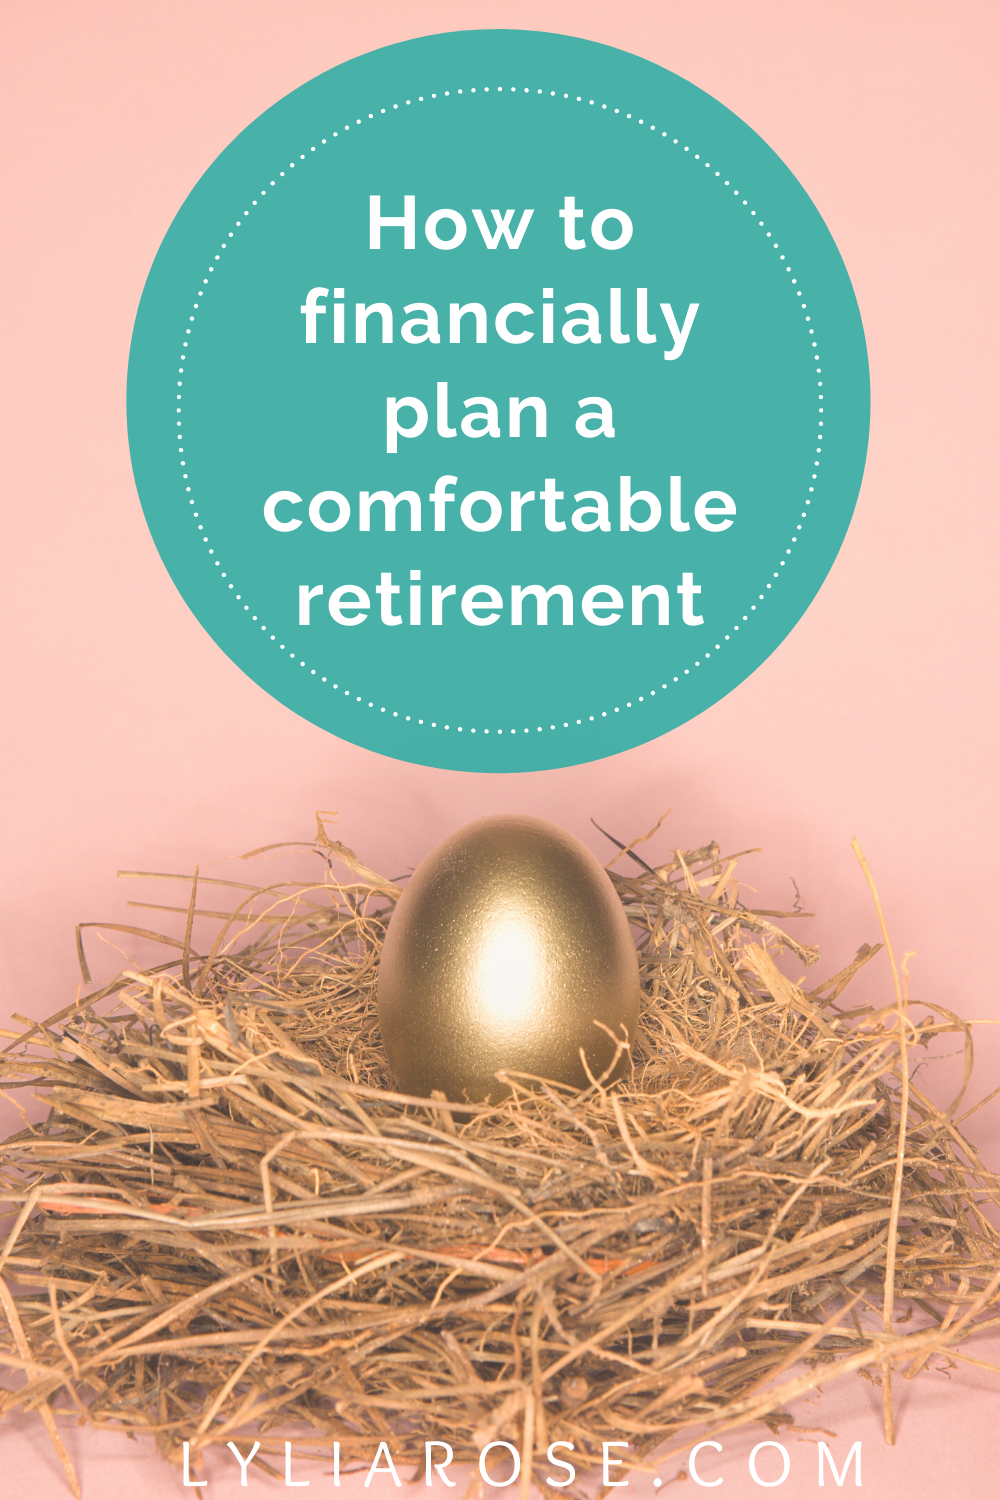 How to financially plan a comfortable retirement